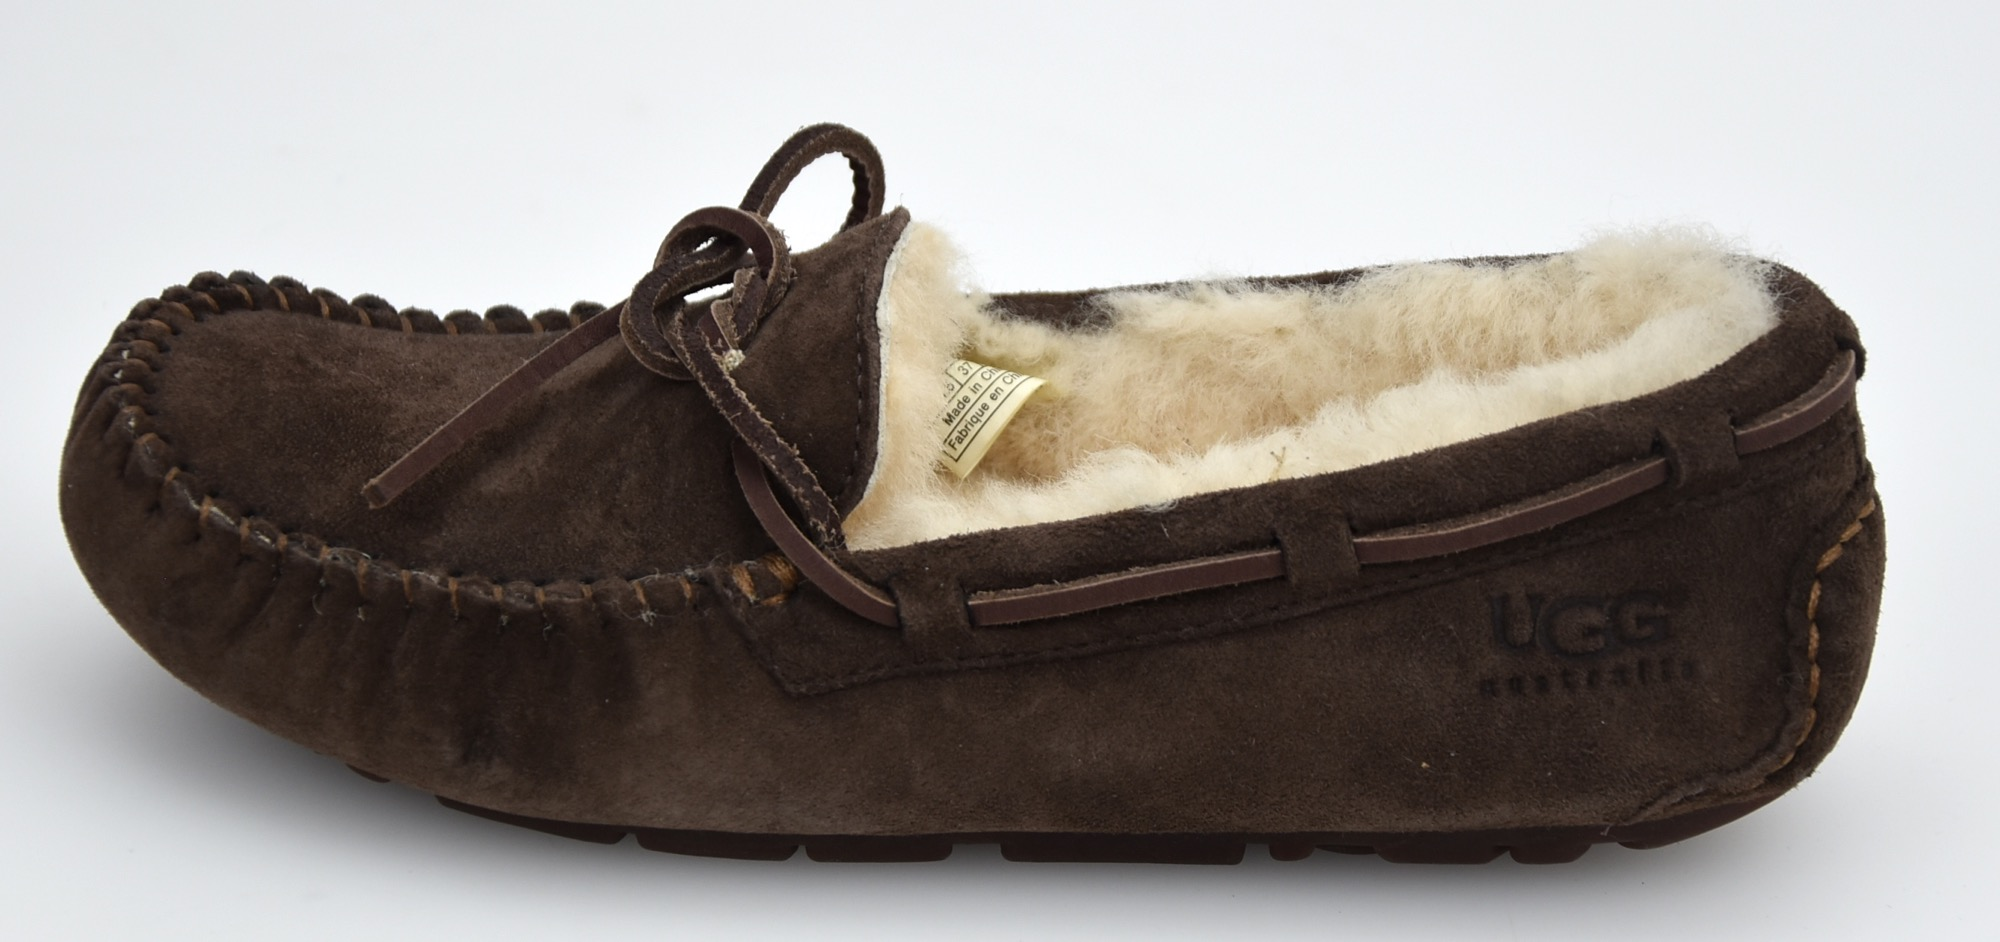 fca2237f582 Details about UGG AUSTRALIA WOMAN LOAFERS SHOES WINTER CASUAL FREE TIME  CODE DAKOTA 5612 W